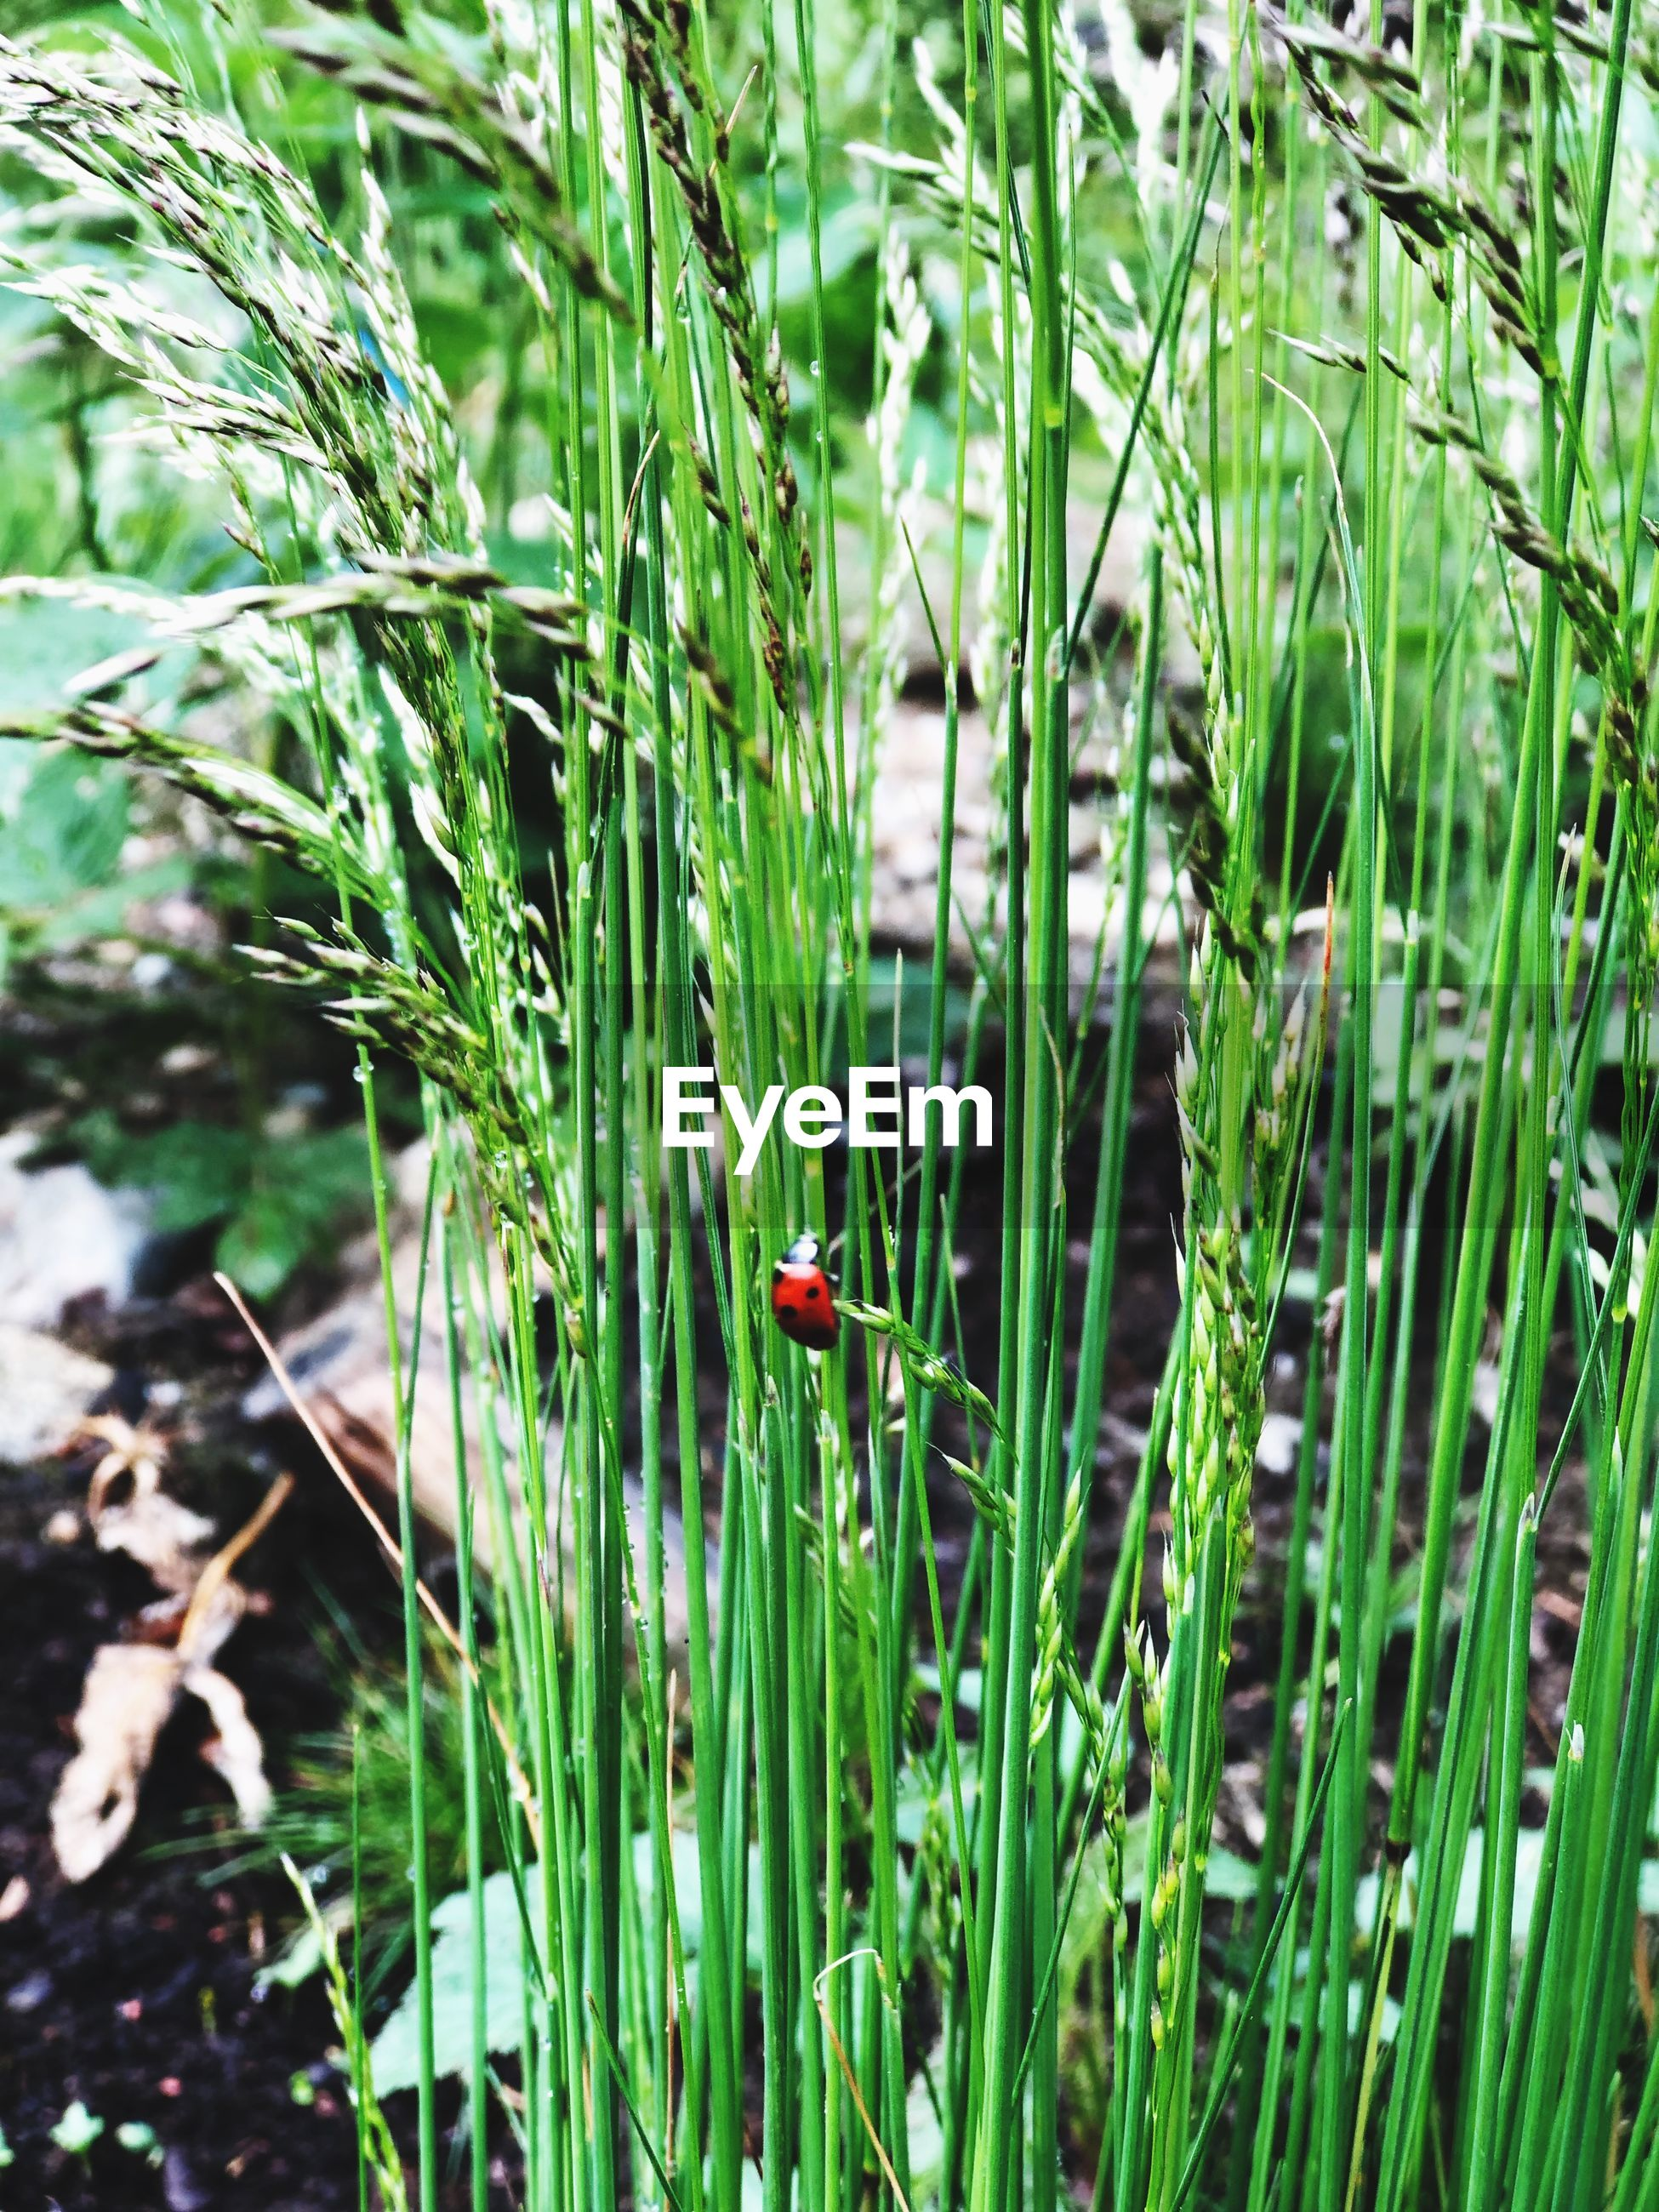 VIEW OF SNAKE ON GRASS